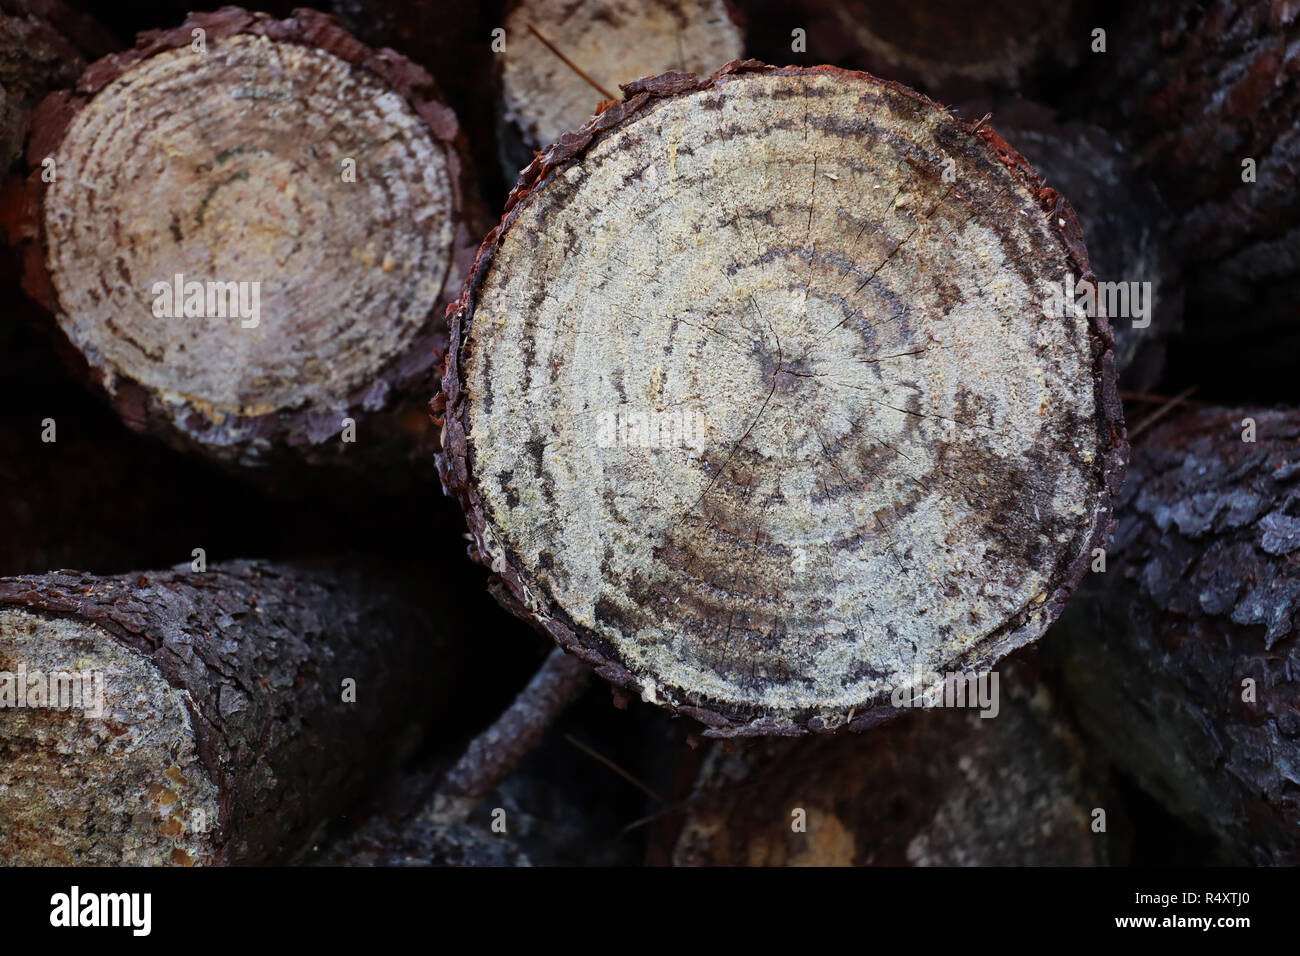 An abstract photograph depicting chopped wood going through the seasoning process before being burnt to provide wamth during the Winter. - Stock Image